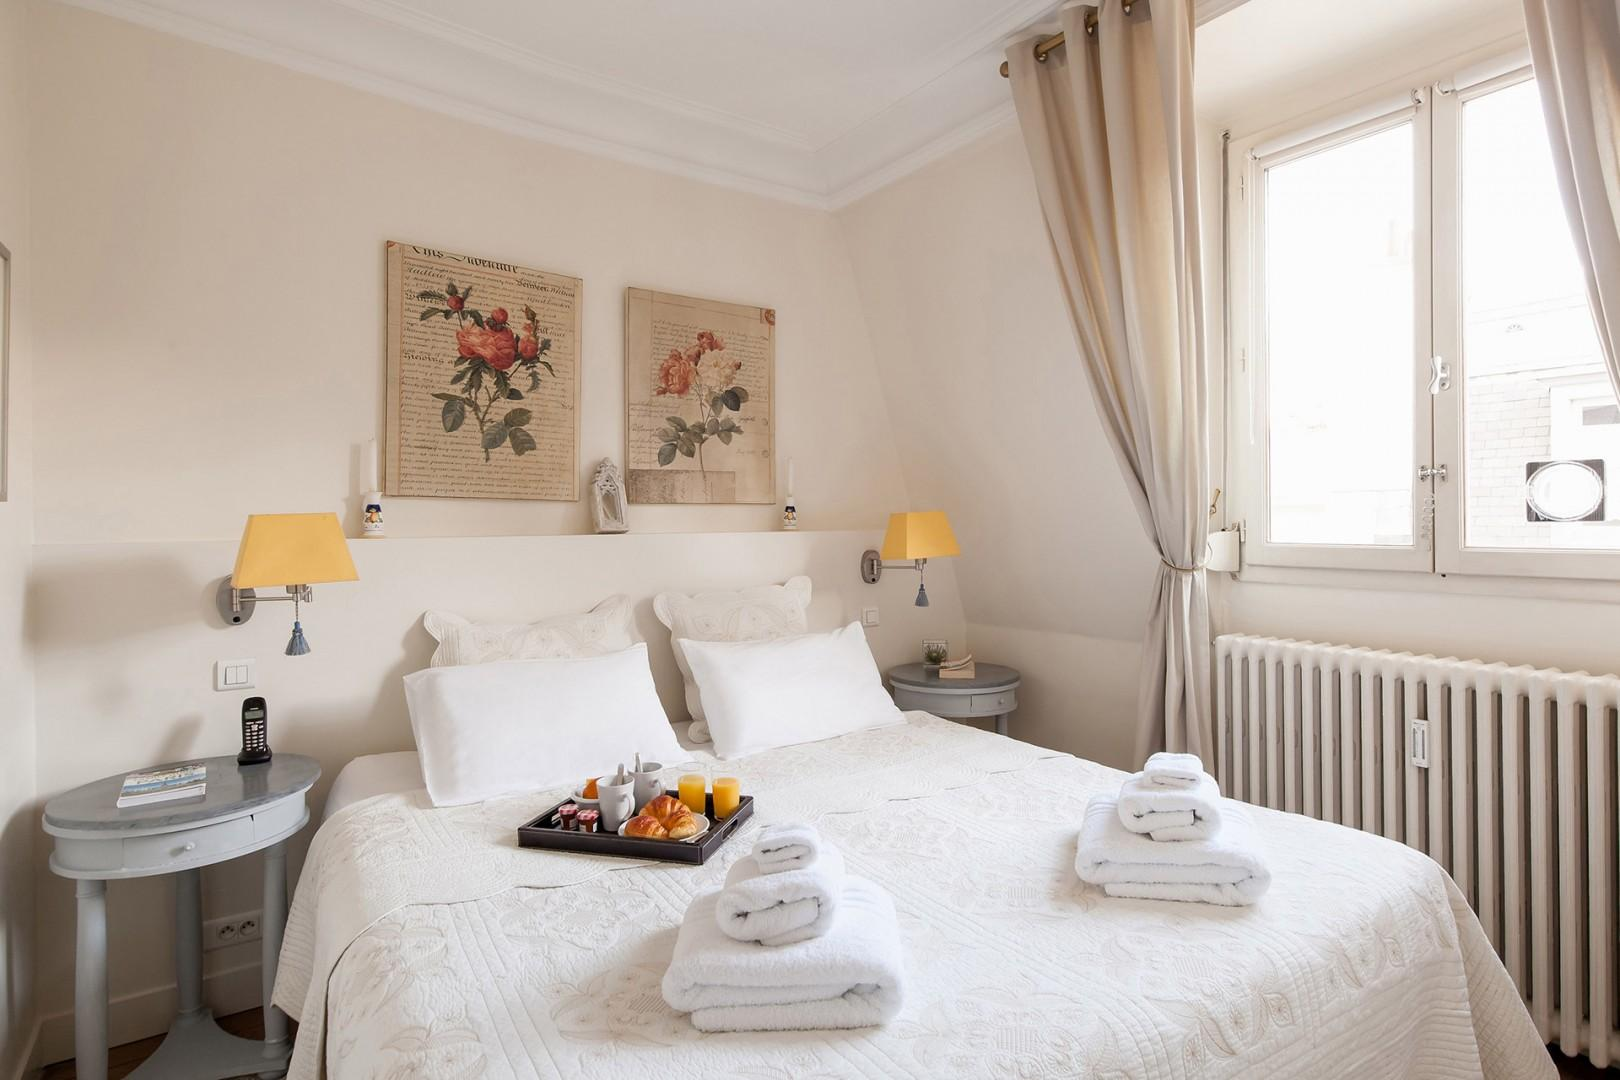 Make yourself at home in the lovely bedroom 2.